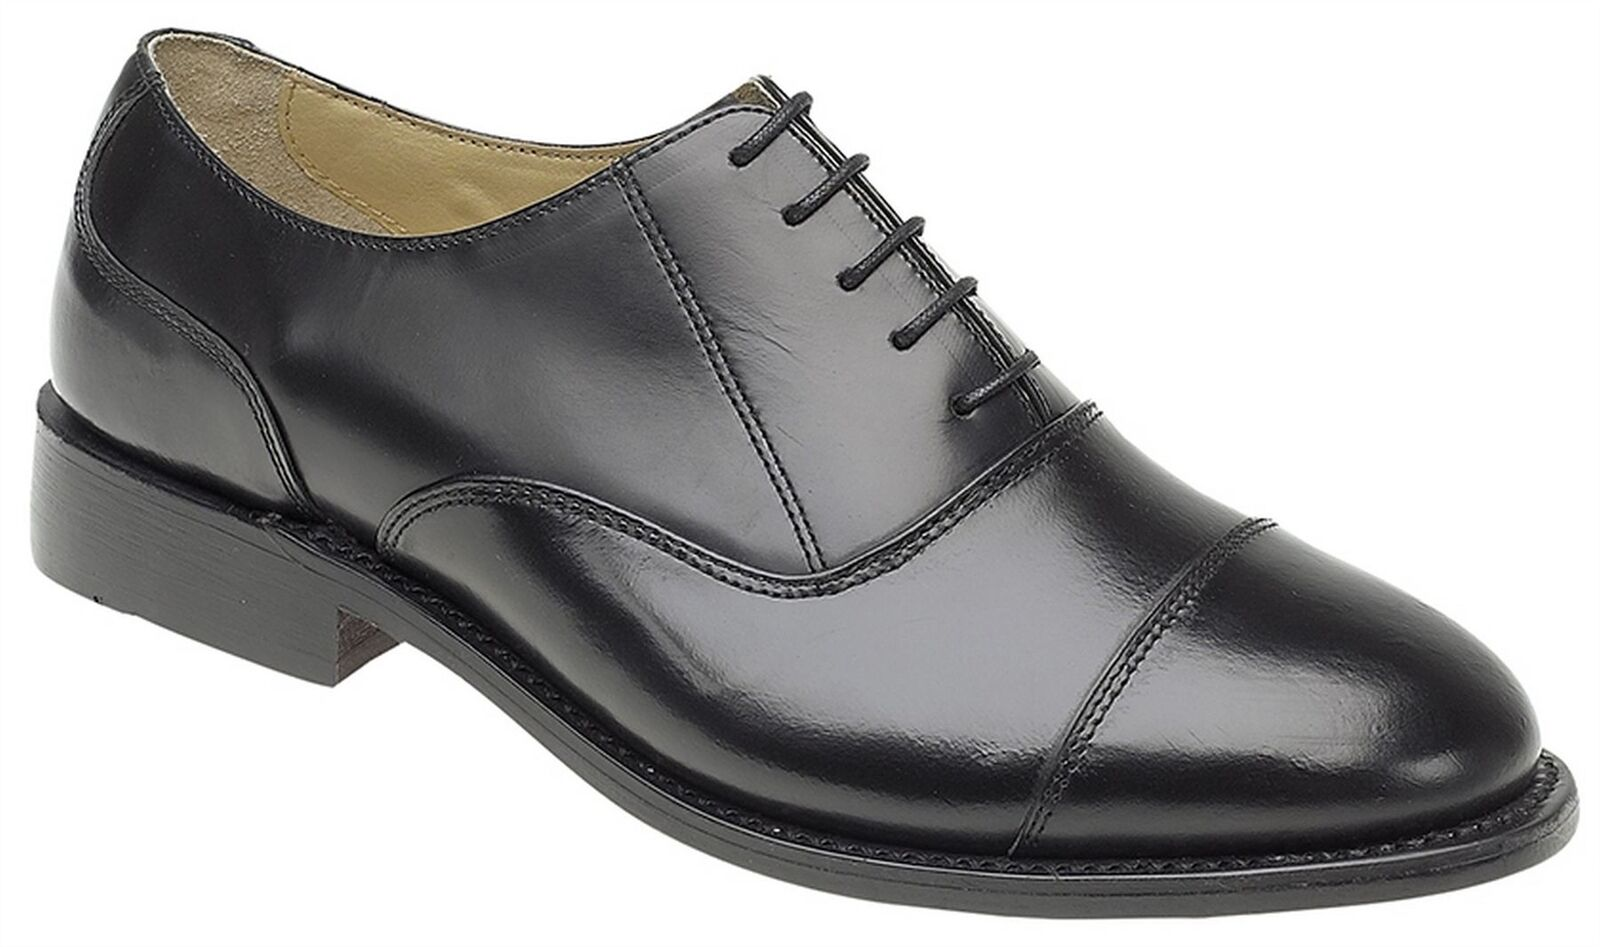 Mens Formal shoes Leather Sole Lace Up Oxford Capped Goodyear Welted Size